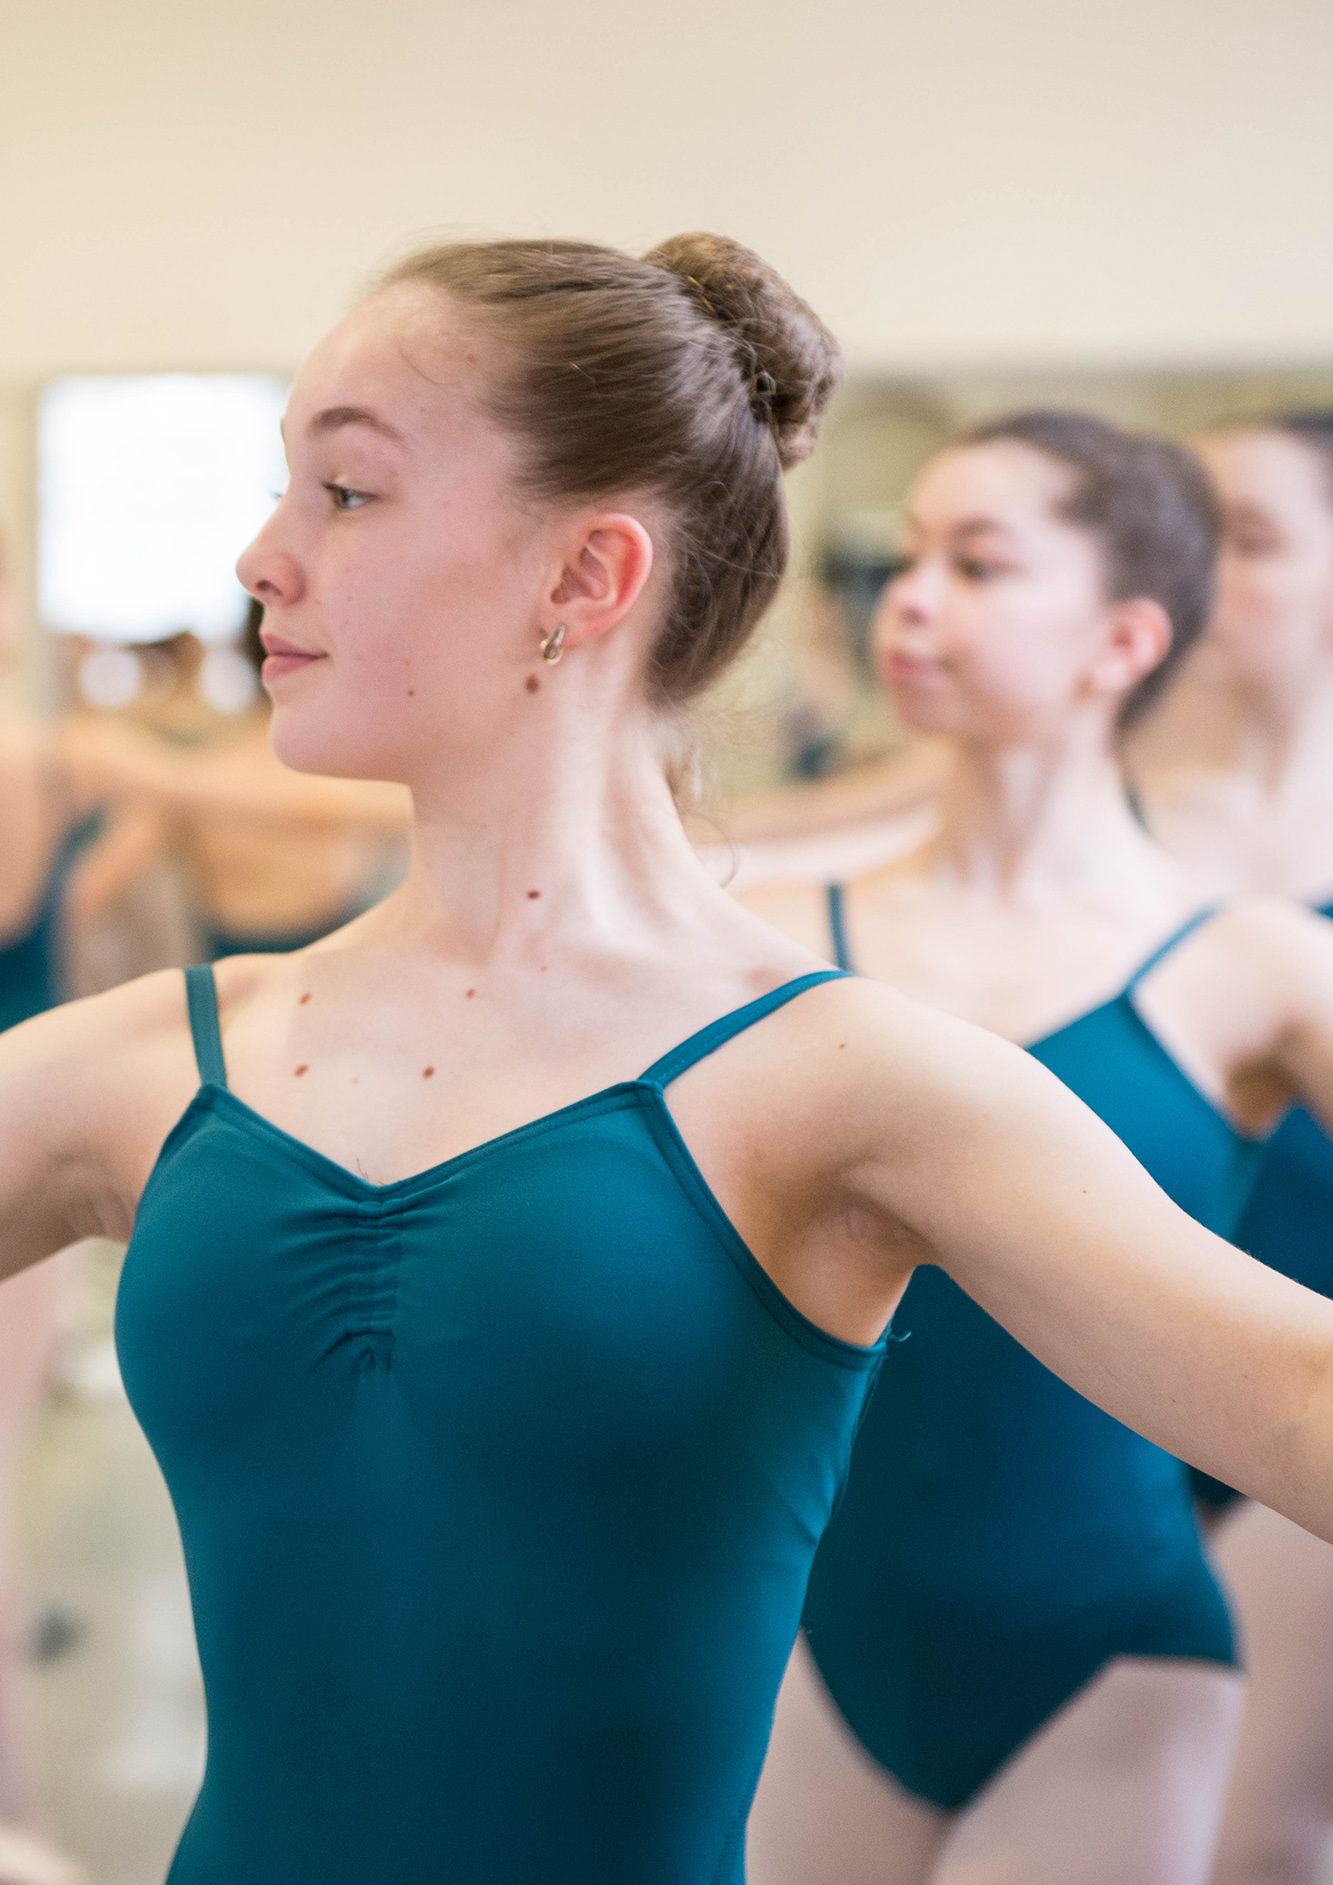 Unlocking potential - It was clear that Central School of Ballet's approach, outlook and guidance unlocks the potential of many young dancers. Their move to Southwark will provide better facilities to enhance this even more, and so the importance of securing this funding was paramount.